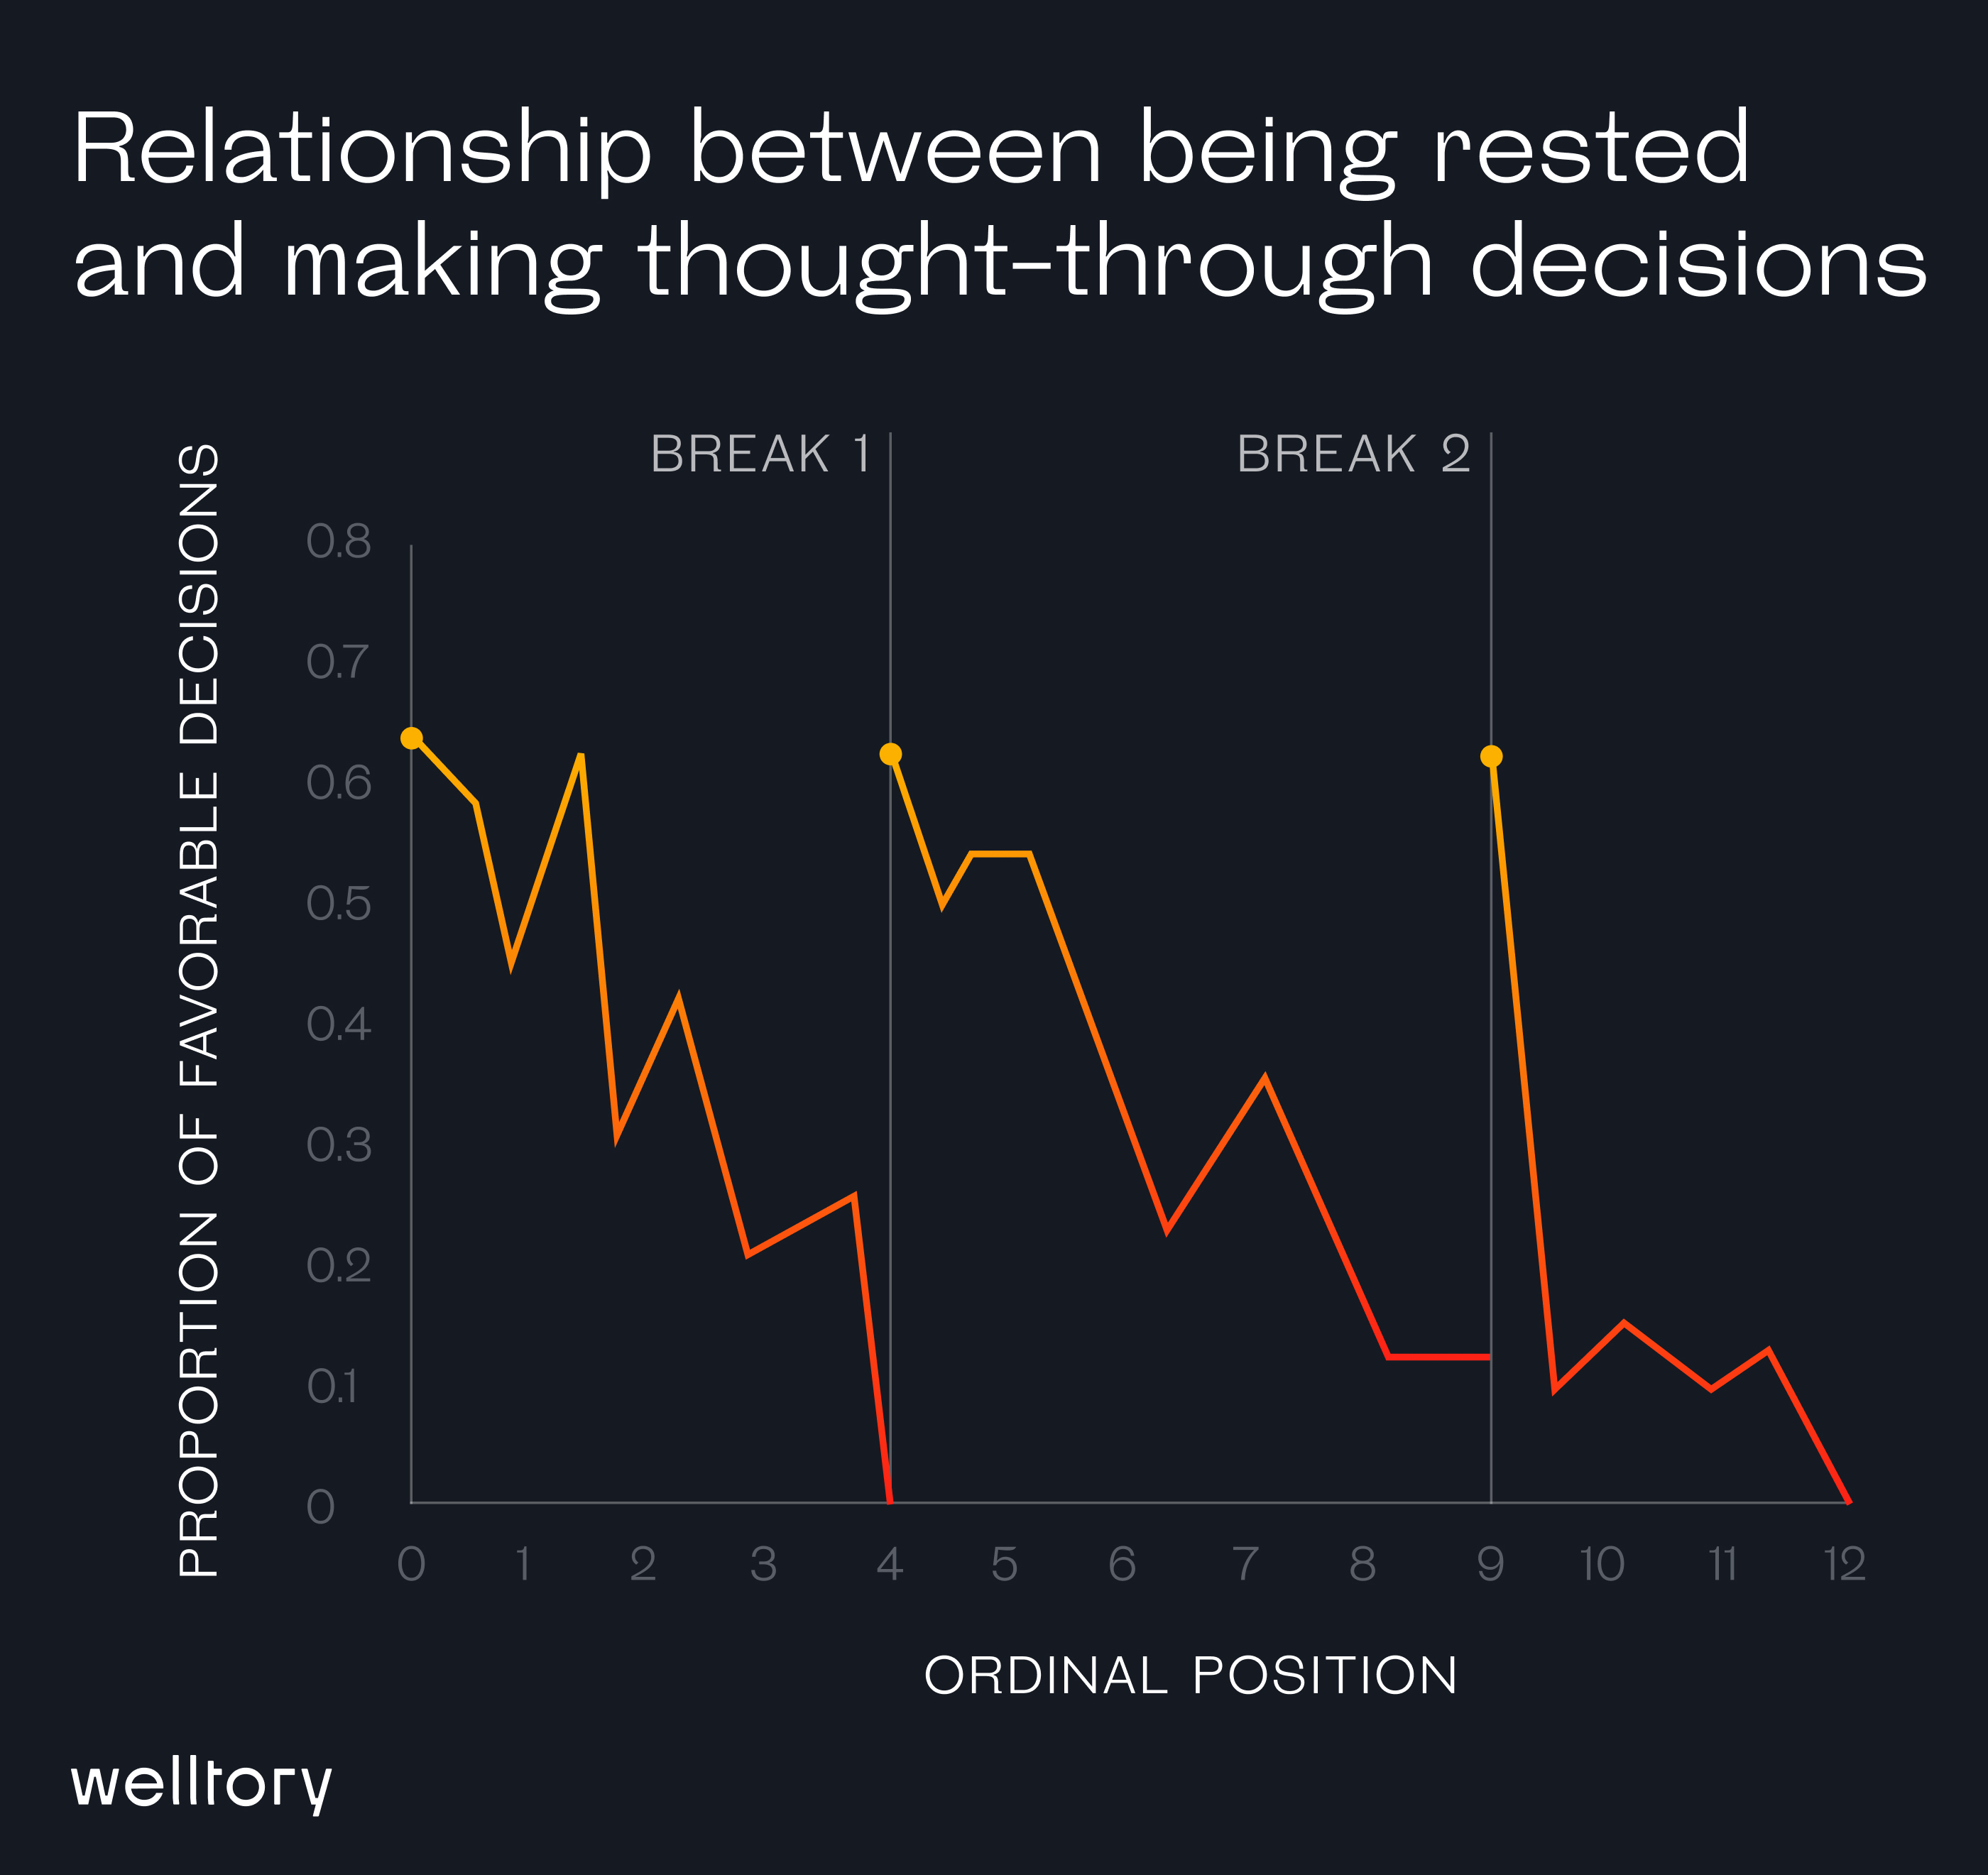 Relationship between being rested and making thought-through decisions